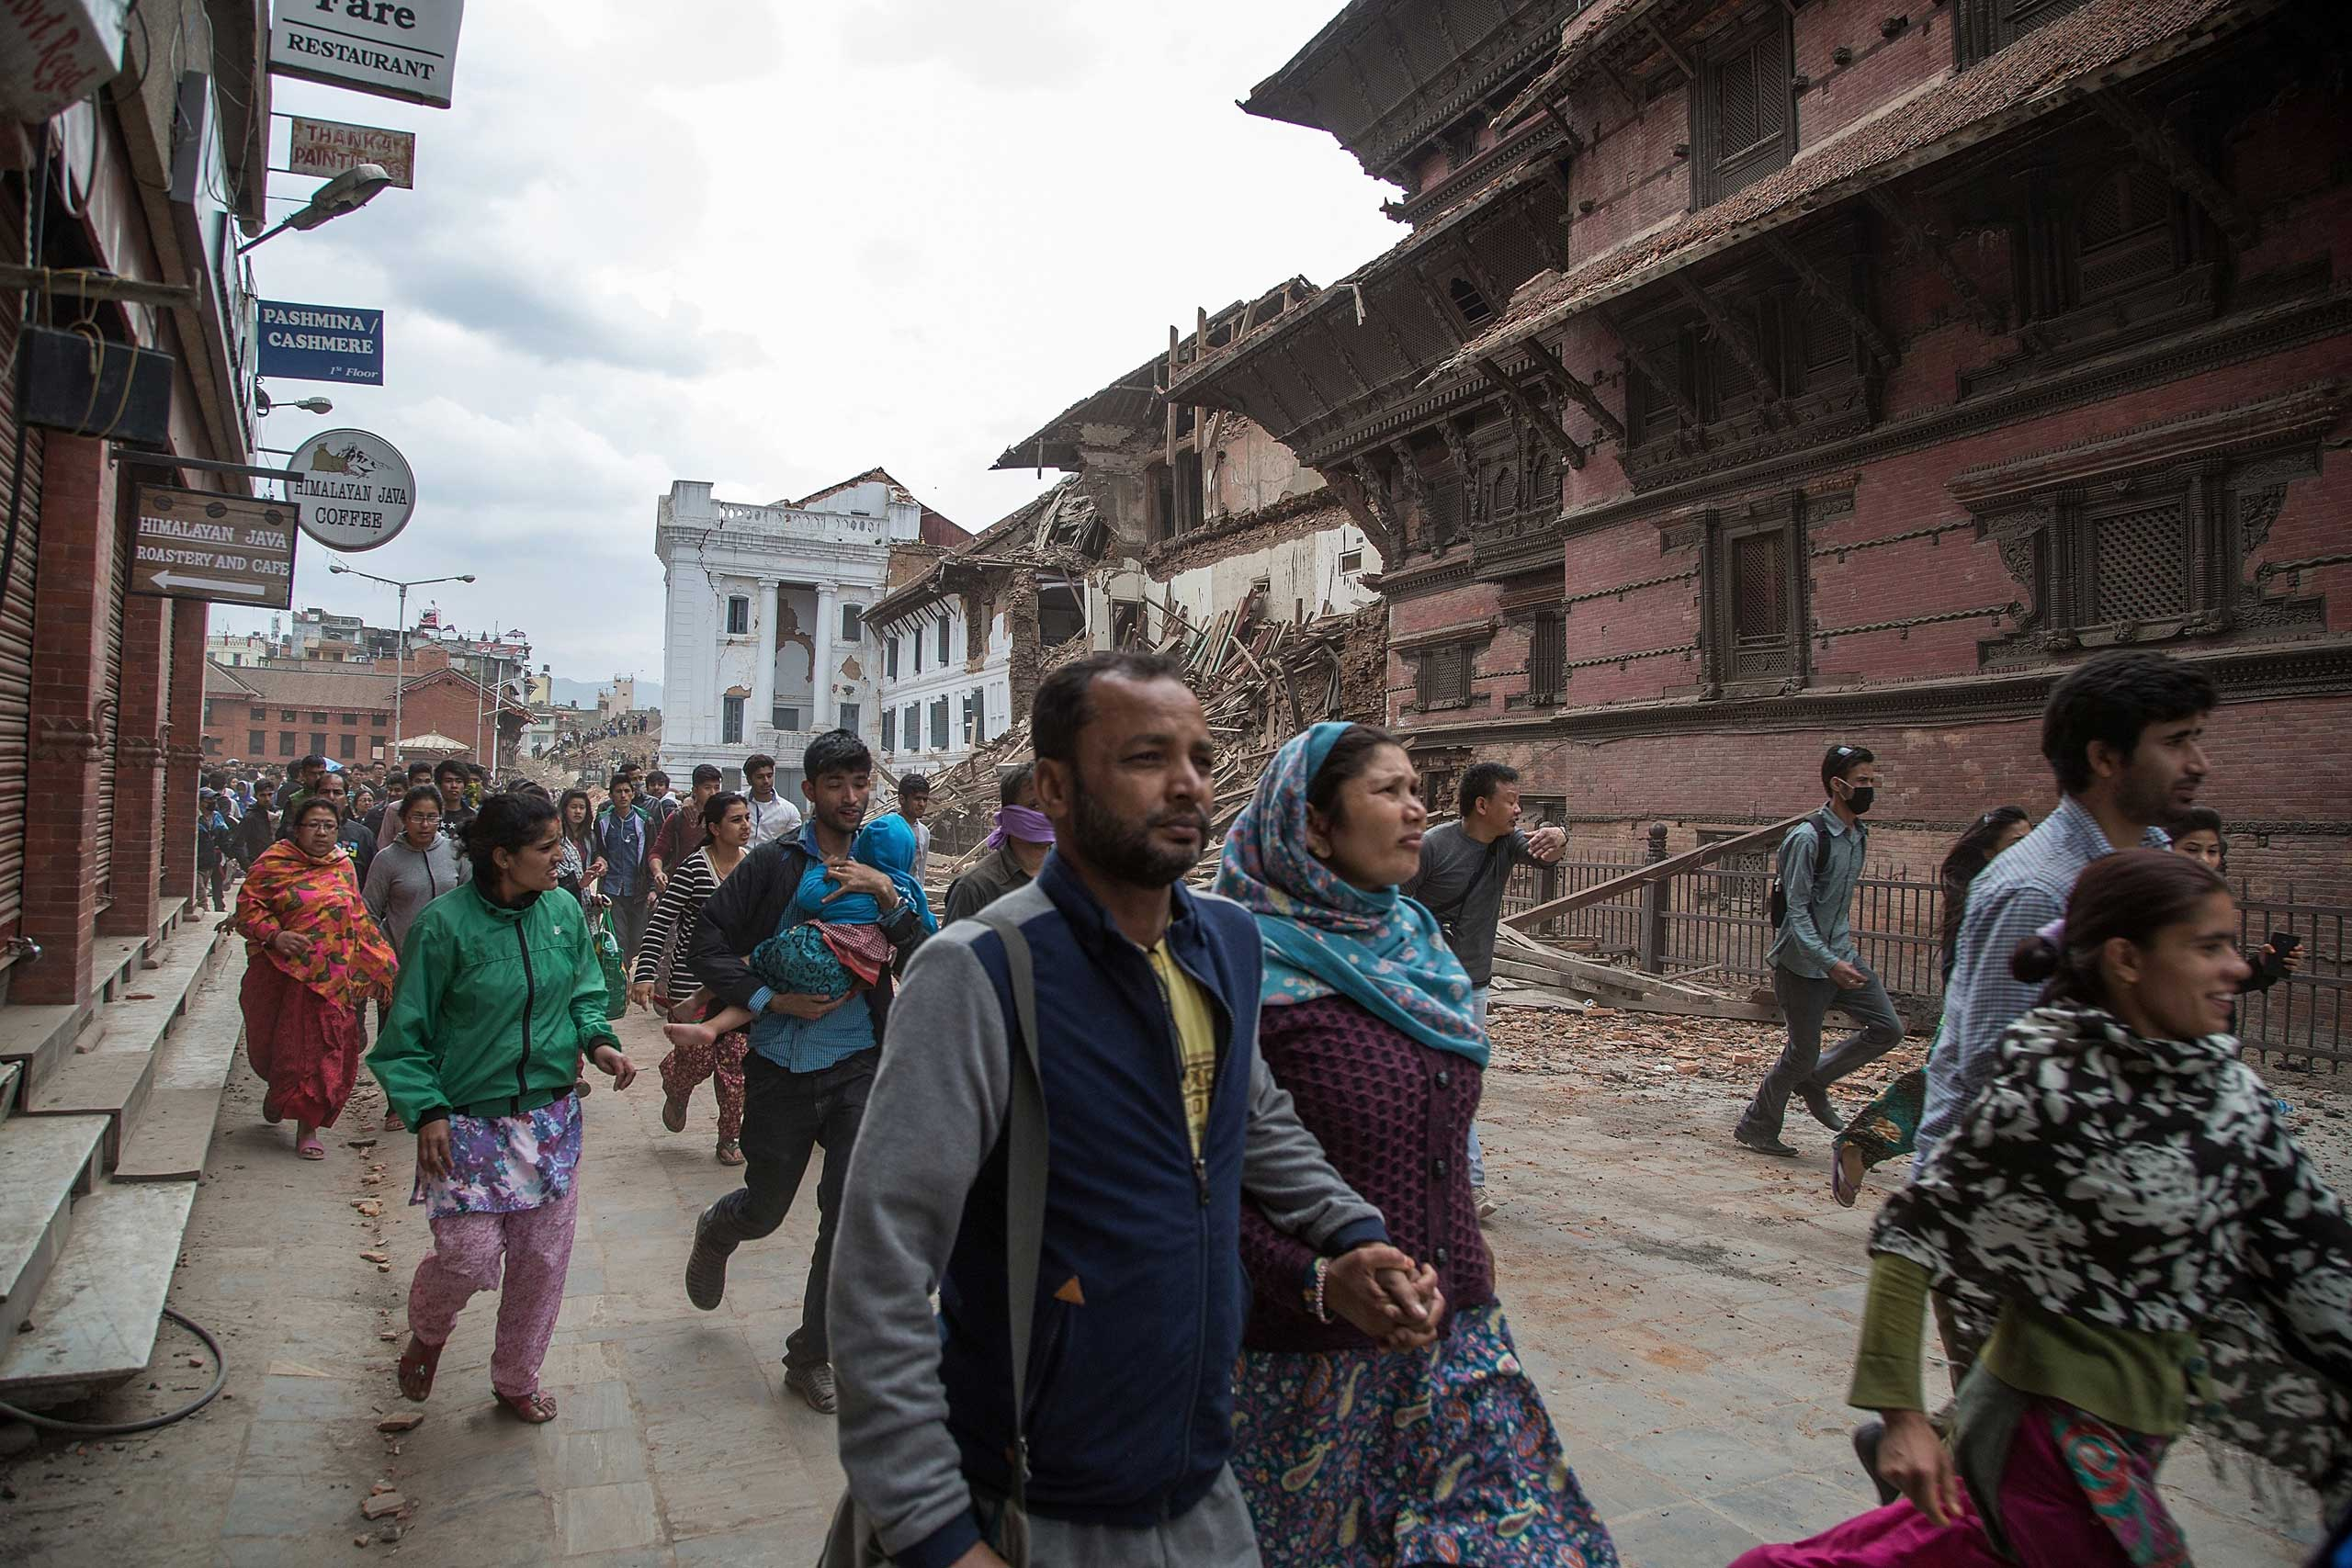 Residents run to shelters after an aftershock hit Kathmandu on April 25, 2015.